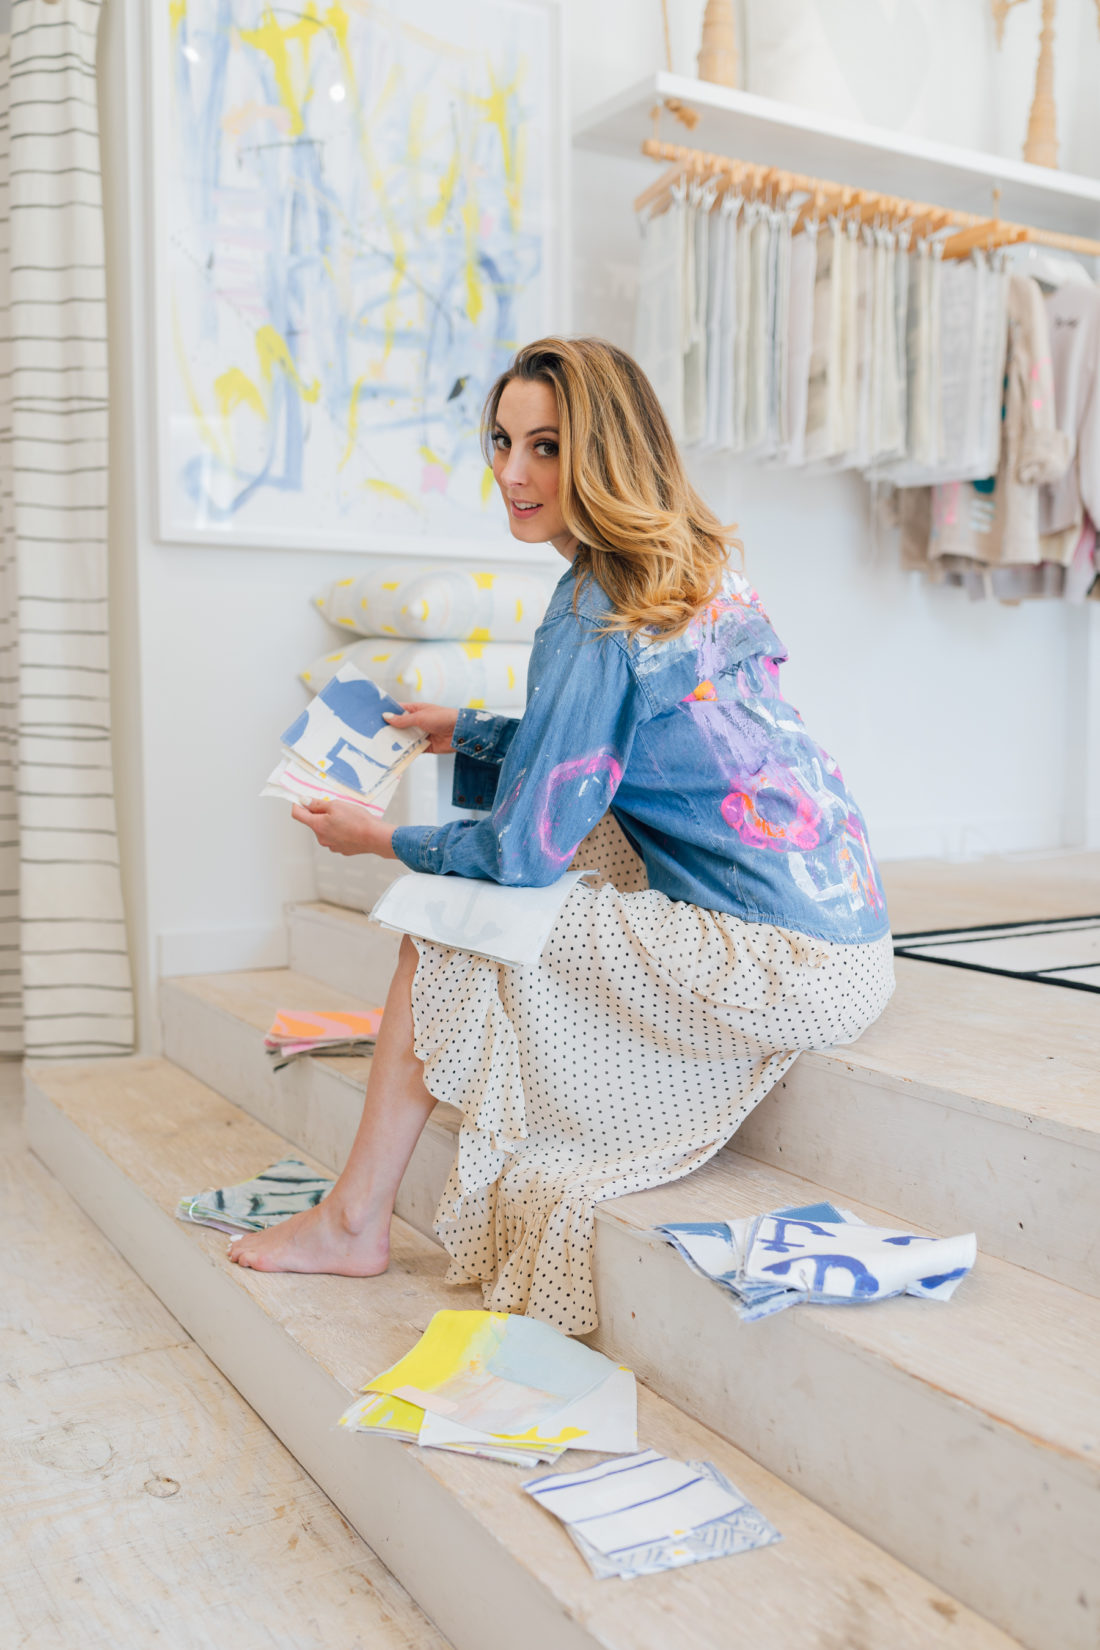 Eva Amurri Martino wears a painted Kerri Rosenthal denim jacket and peruses fabric and wallpaper samples for her home renovation